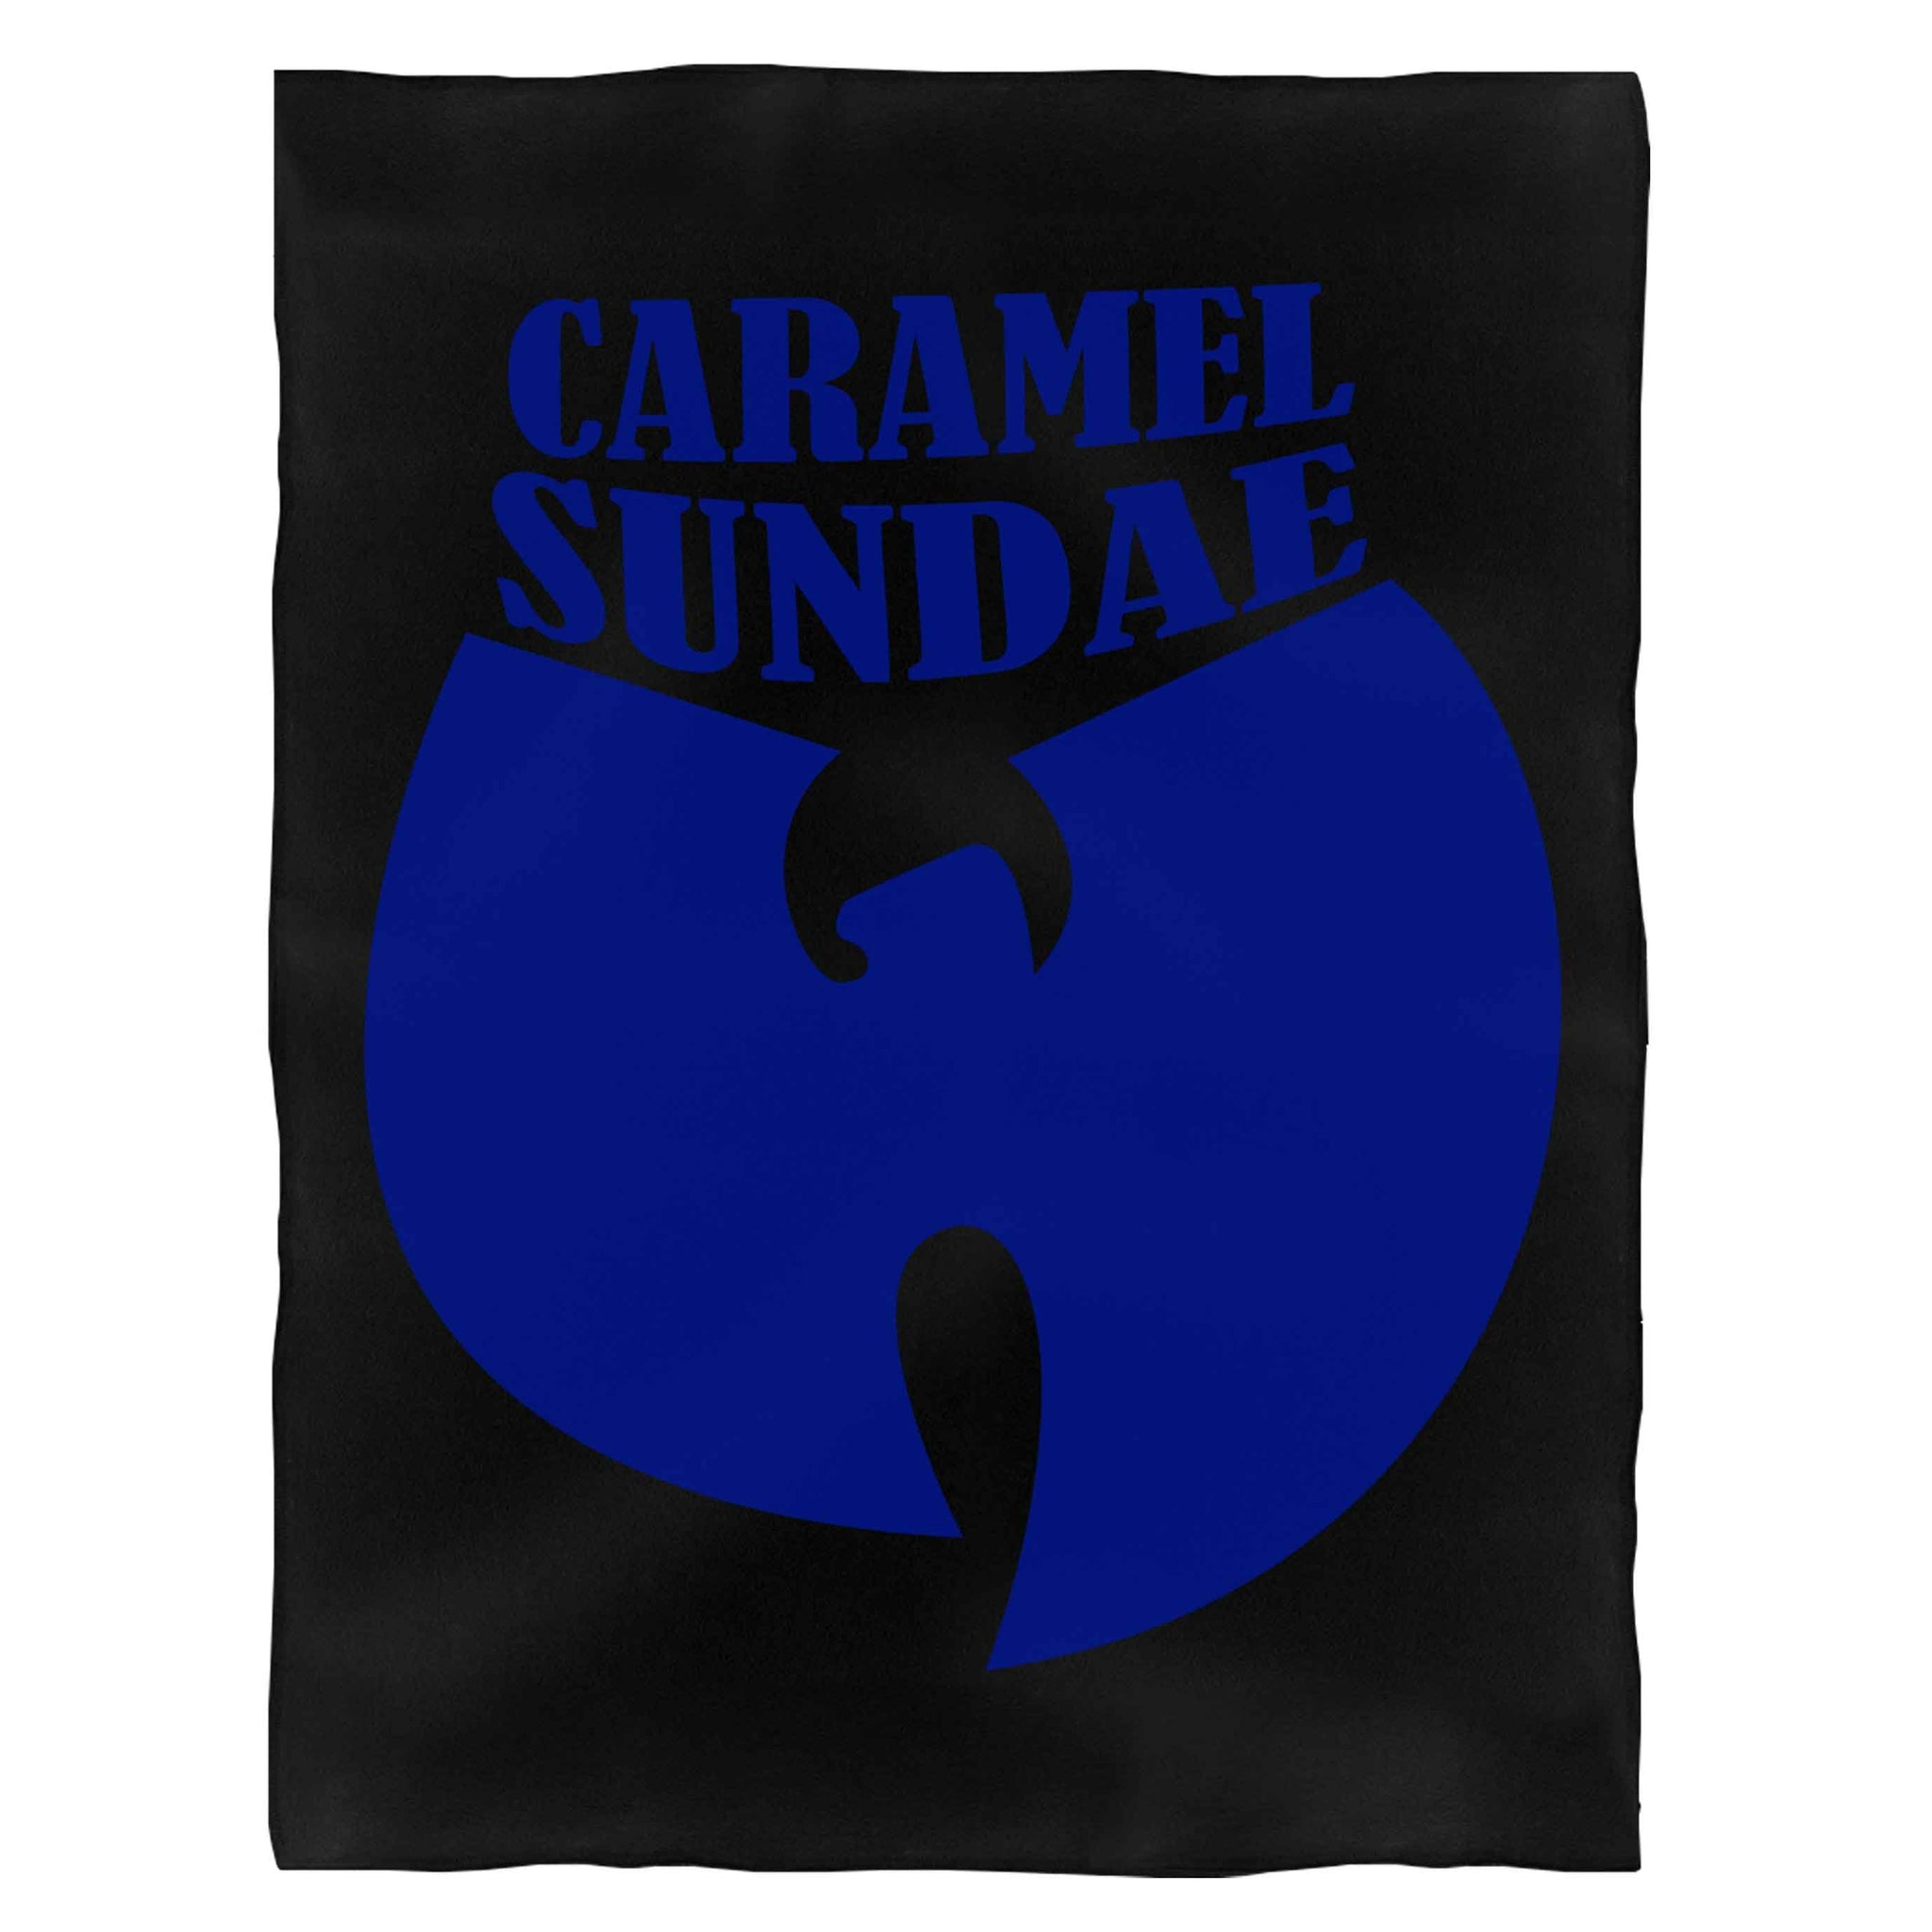 Cool Wutang Caramel Sundae Hip Hop Music Fleece Blanket